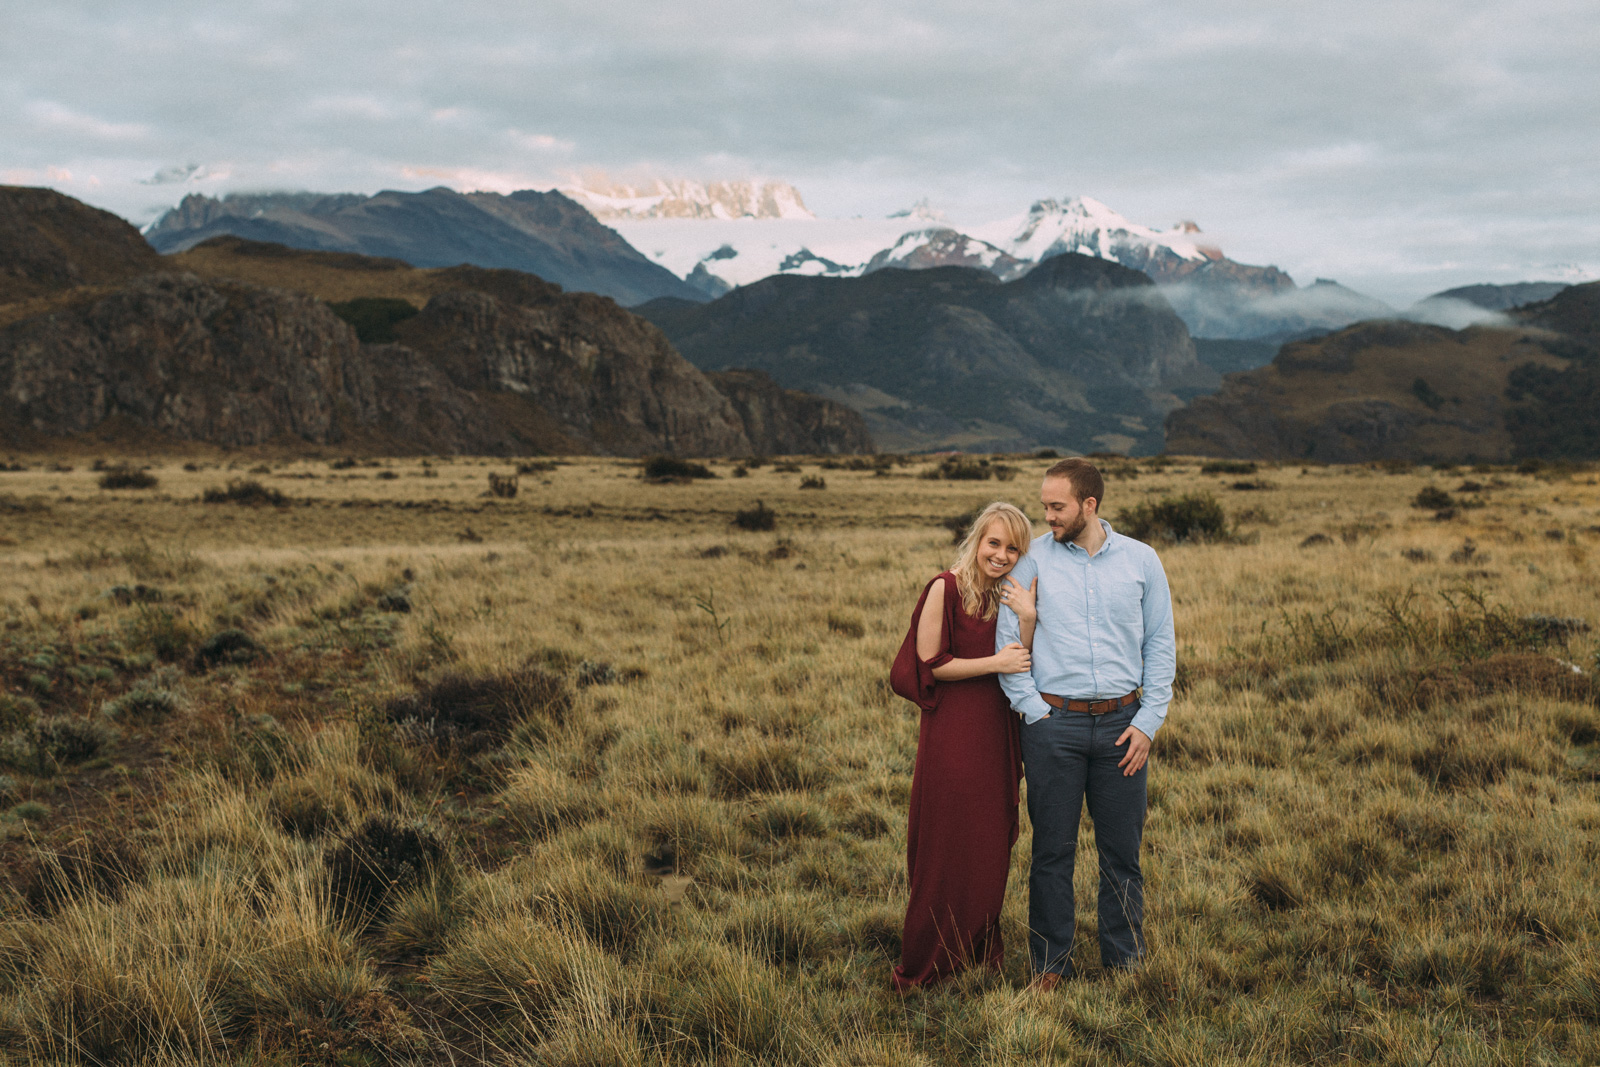 Patagonia-engagement-photography-in-El-Chalten-Argentina-by-lifestyle-photographer-Sam-Wong-of-Artanis-Collective_35.jpg